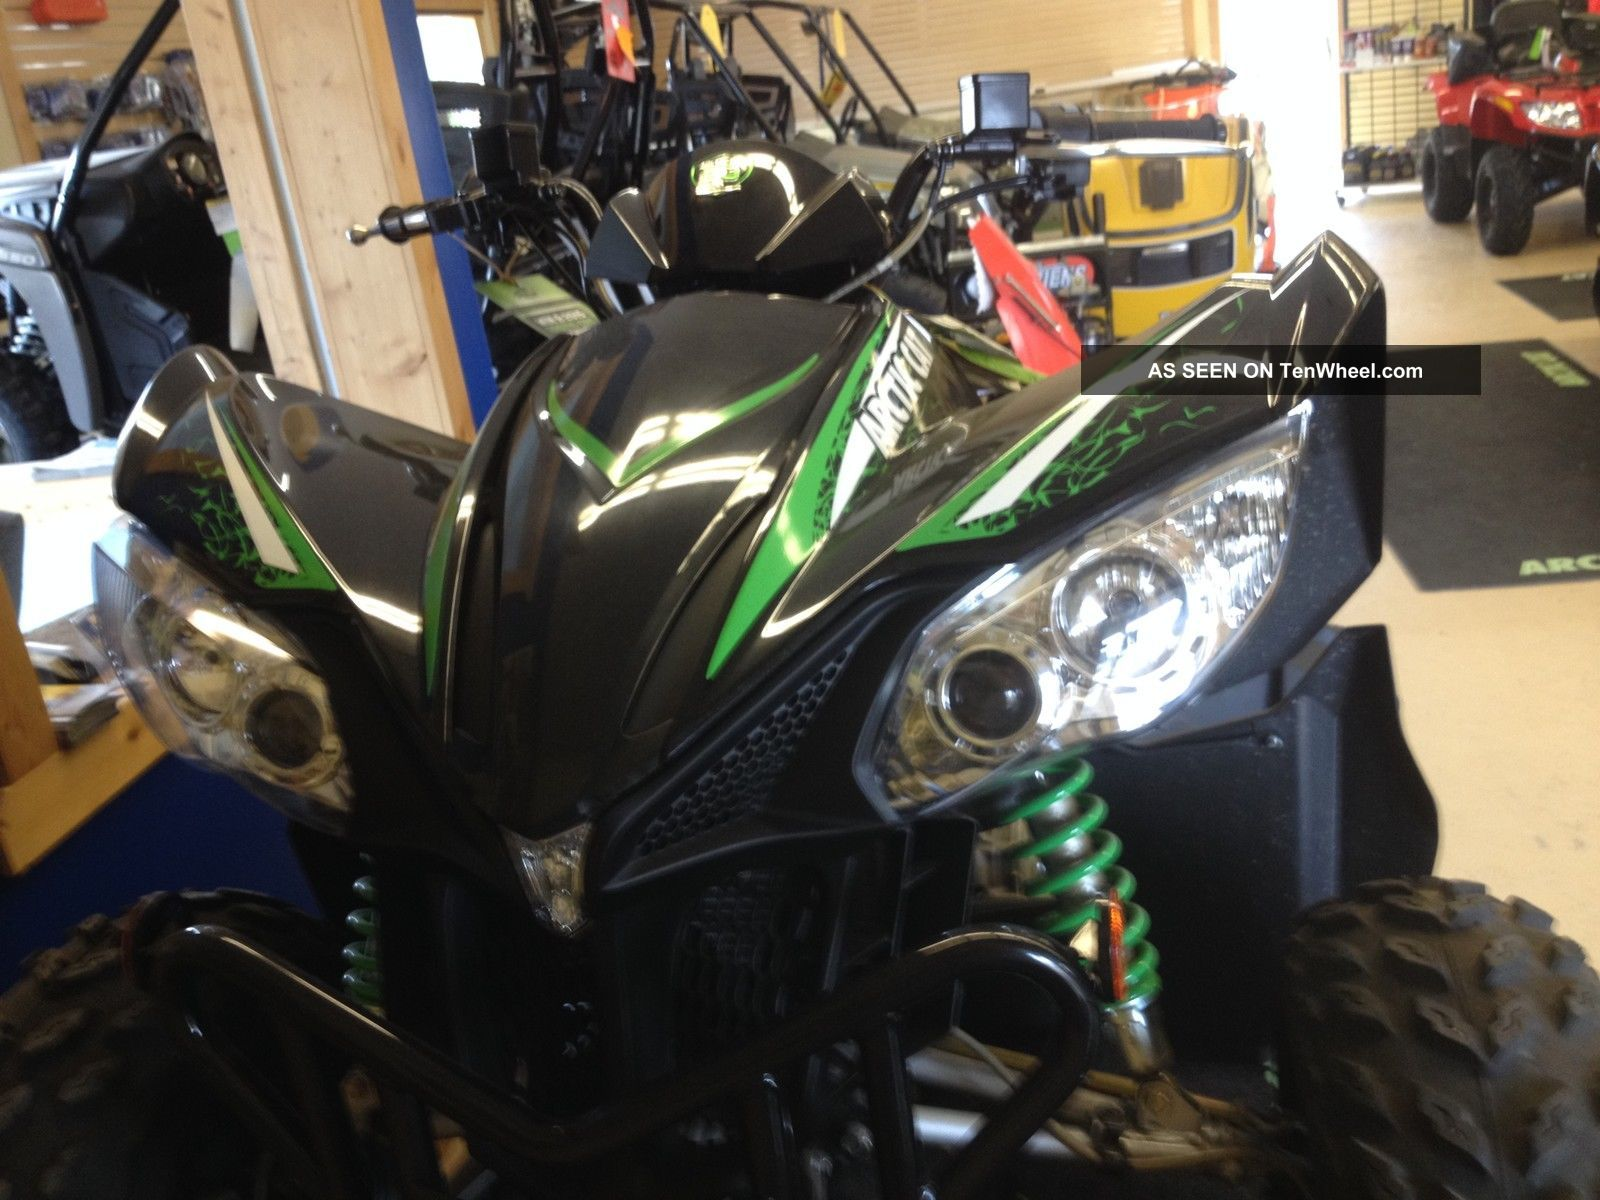 2013 Arctic Cat 450 Xc Arctic Cat photo